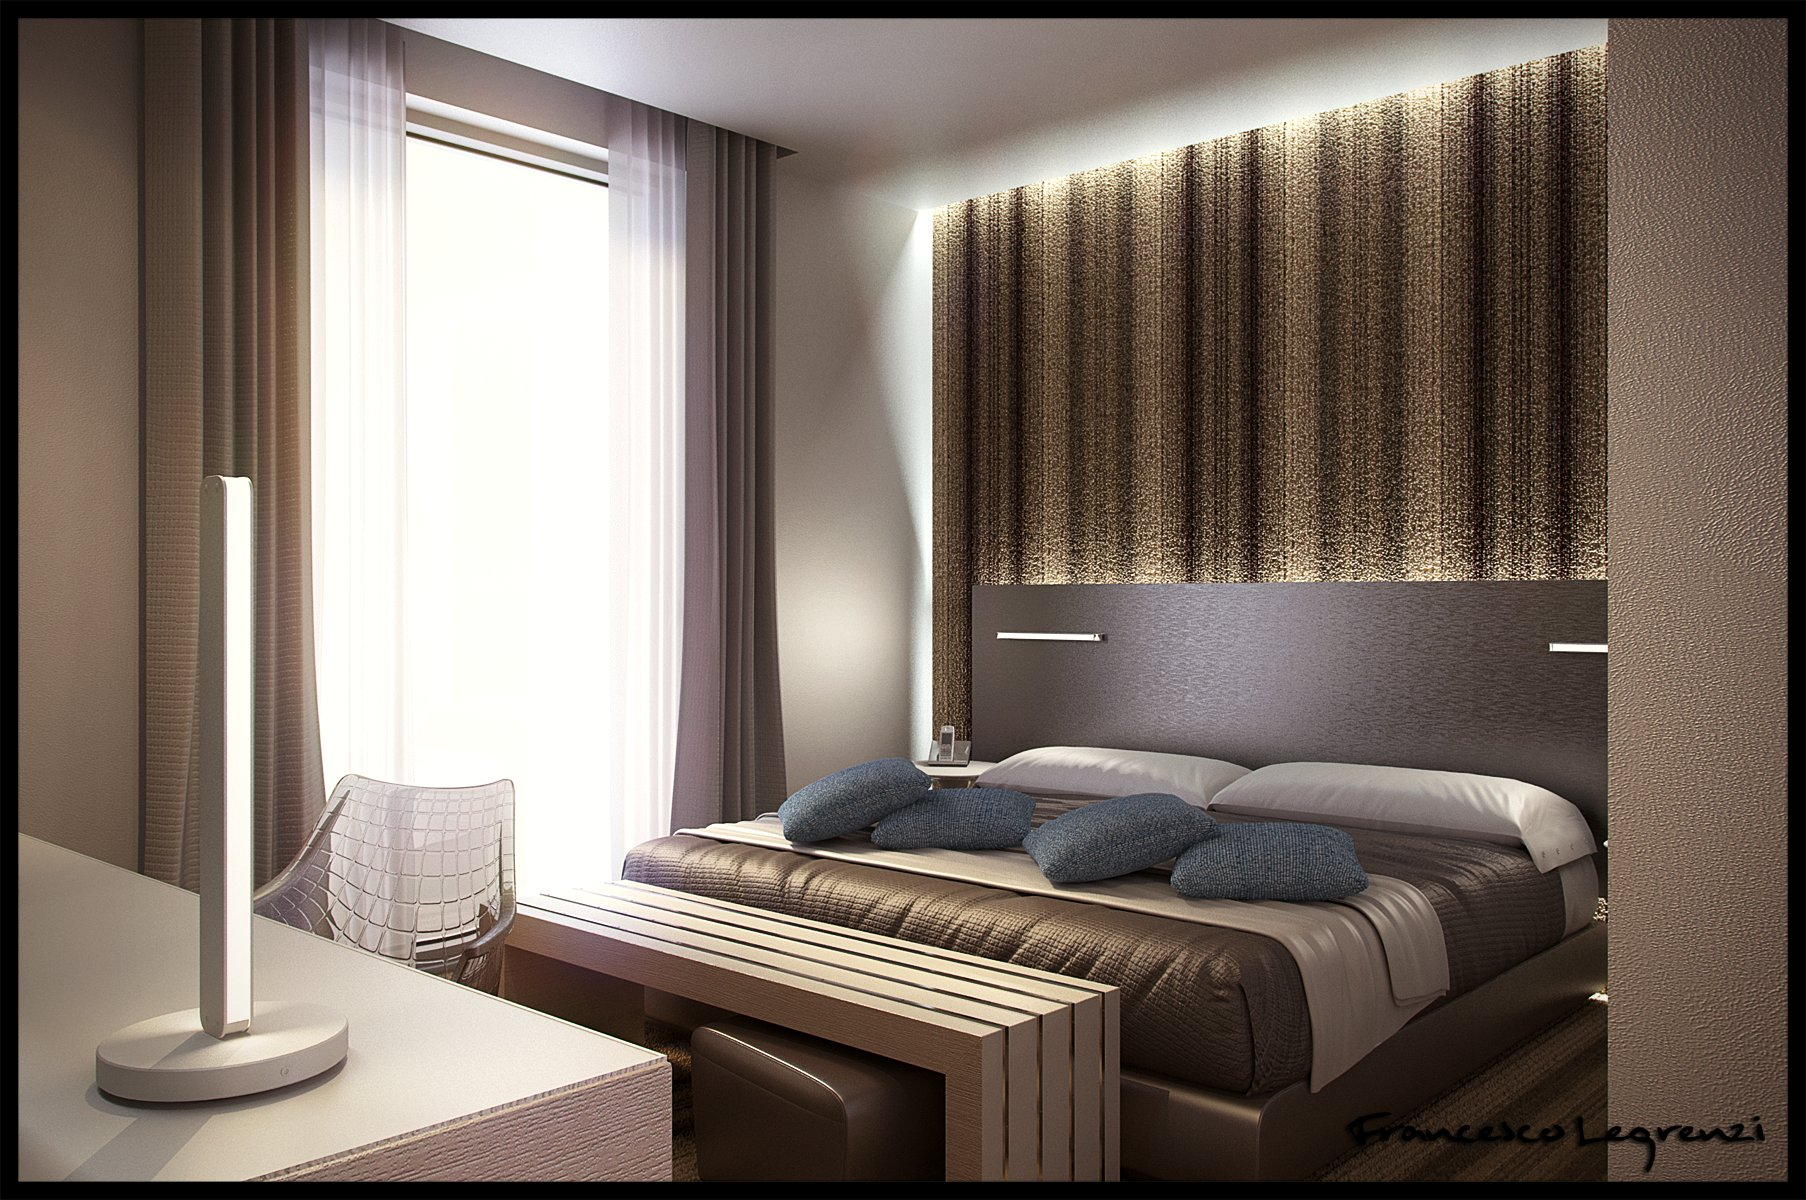 Hotel Rooms Interior legrenzi studio - forum - view topic - [ interior ] - hotel room